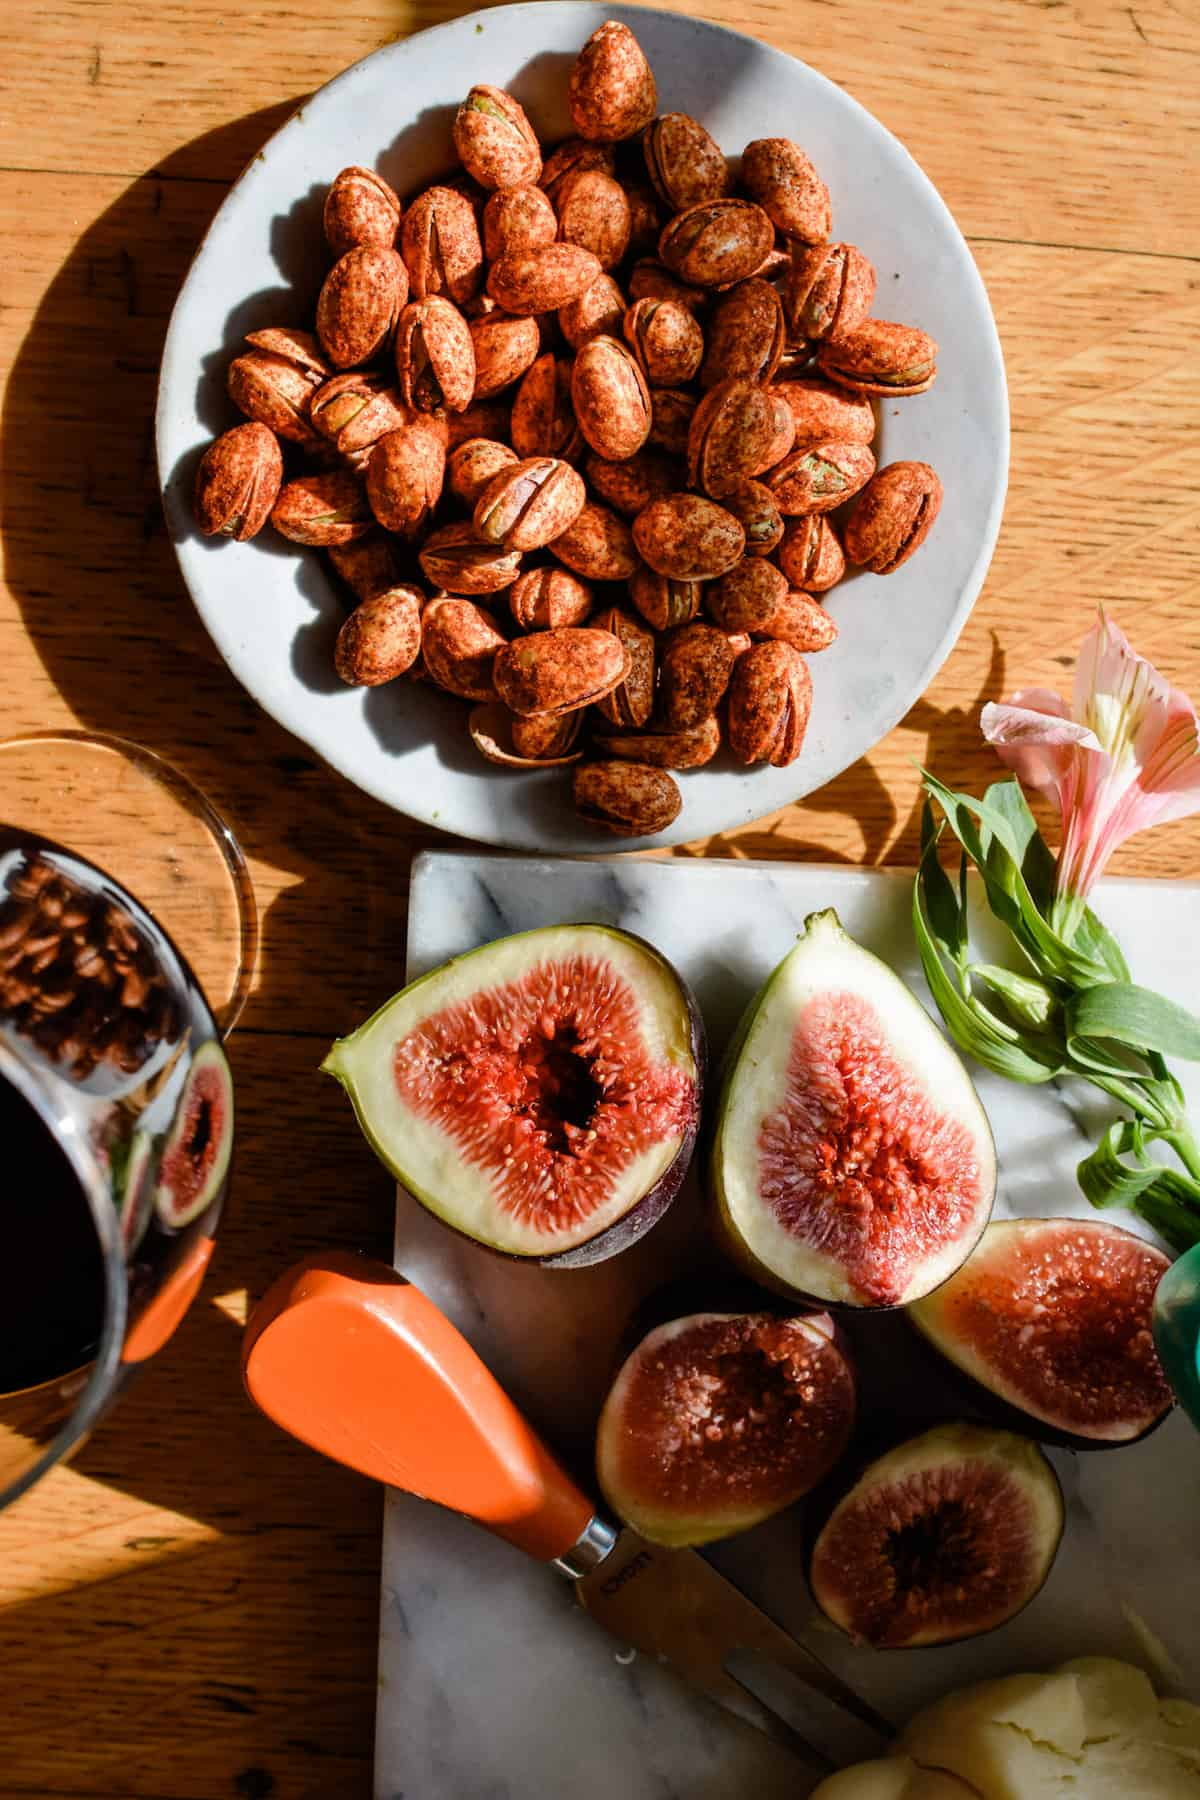 A small plate of chili-coated pistachios sitting on a wooden table with a glass of red wine near by and a few figs cut on a marble table.